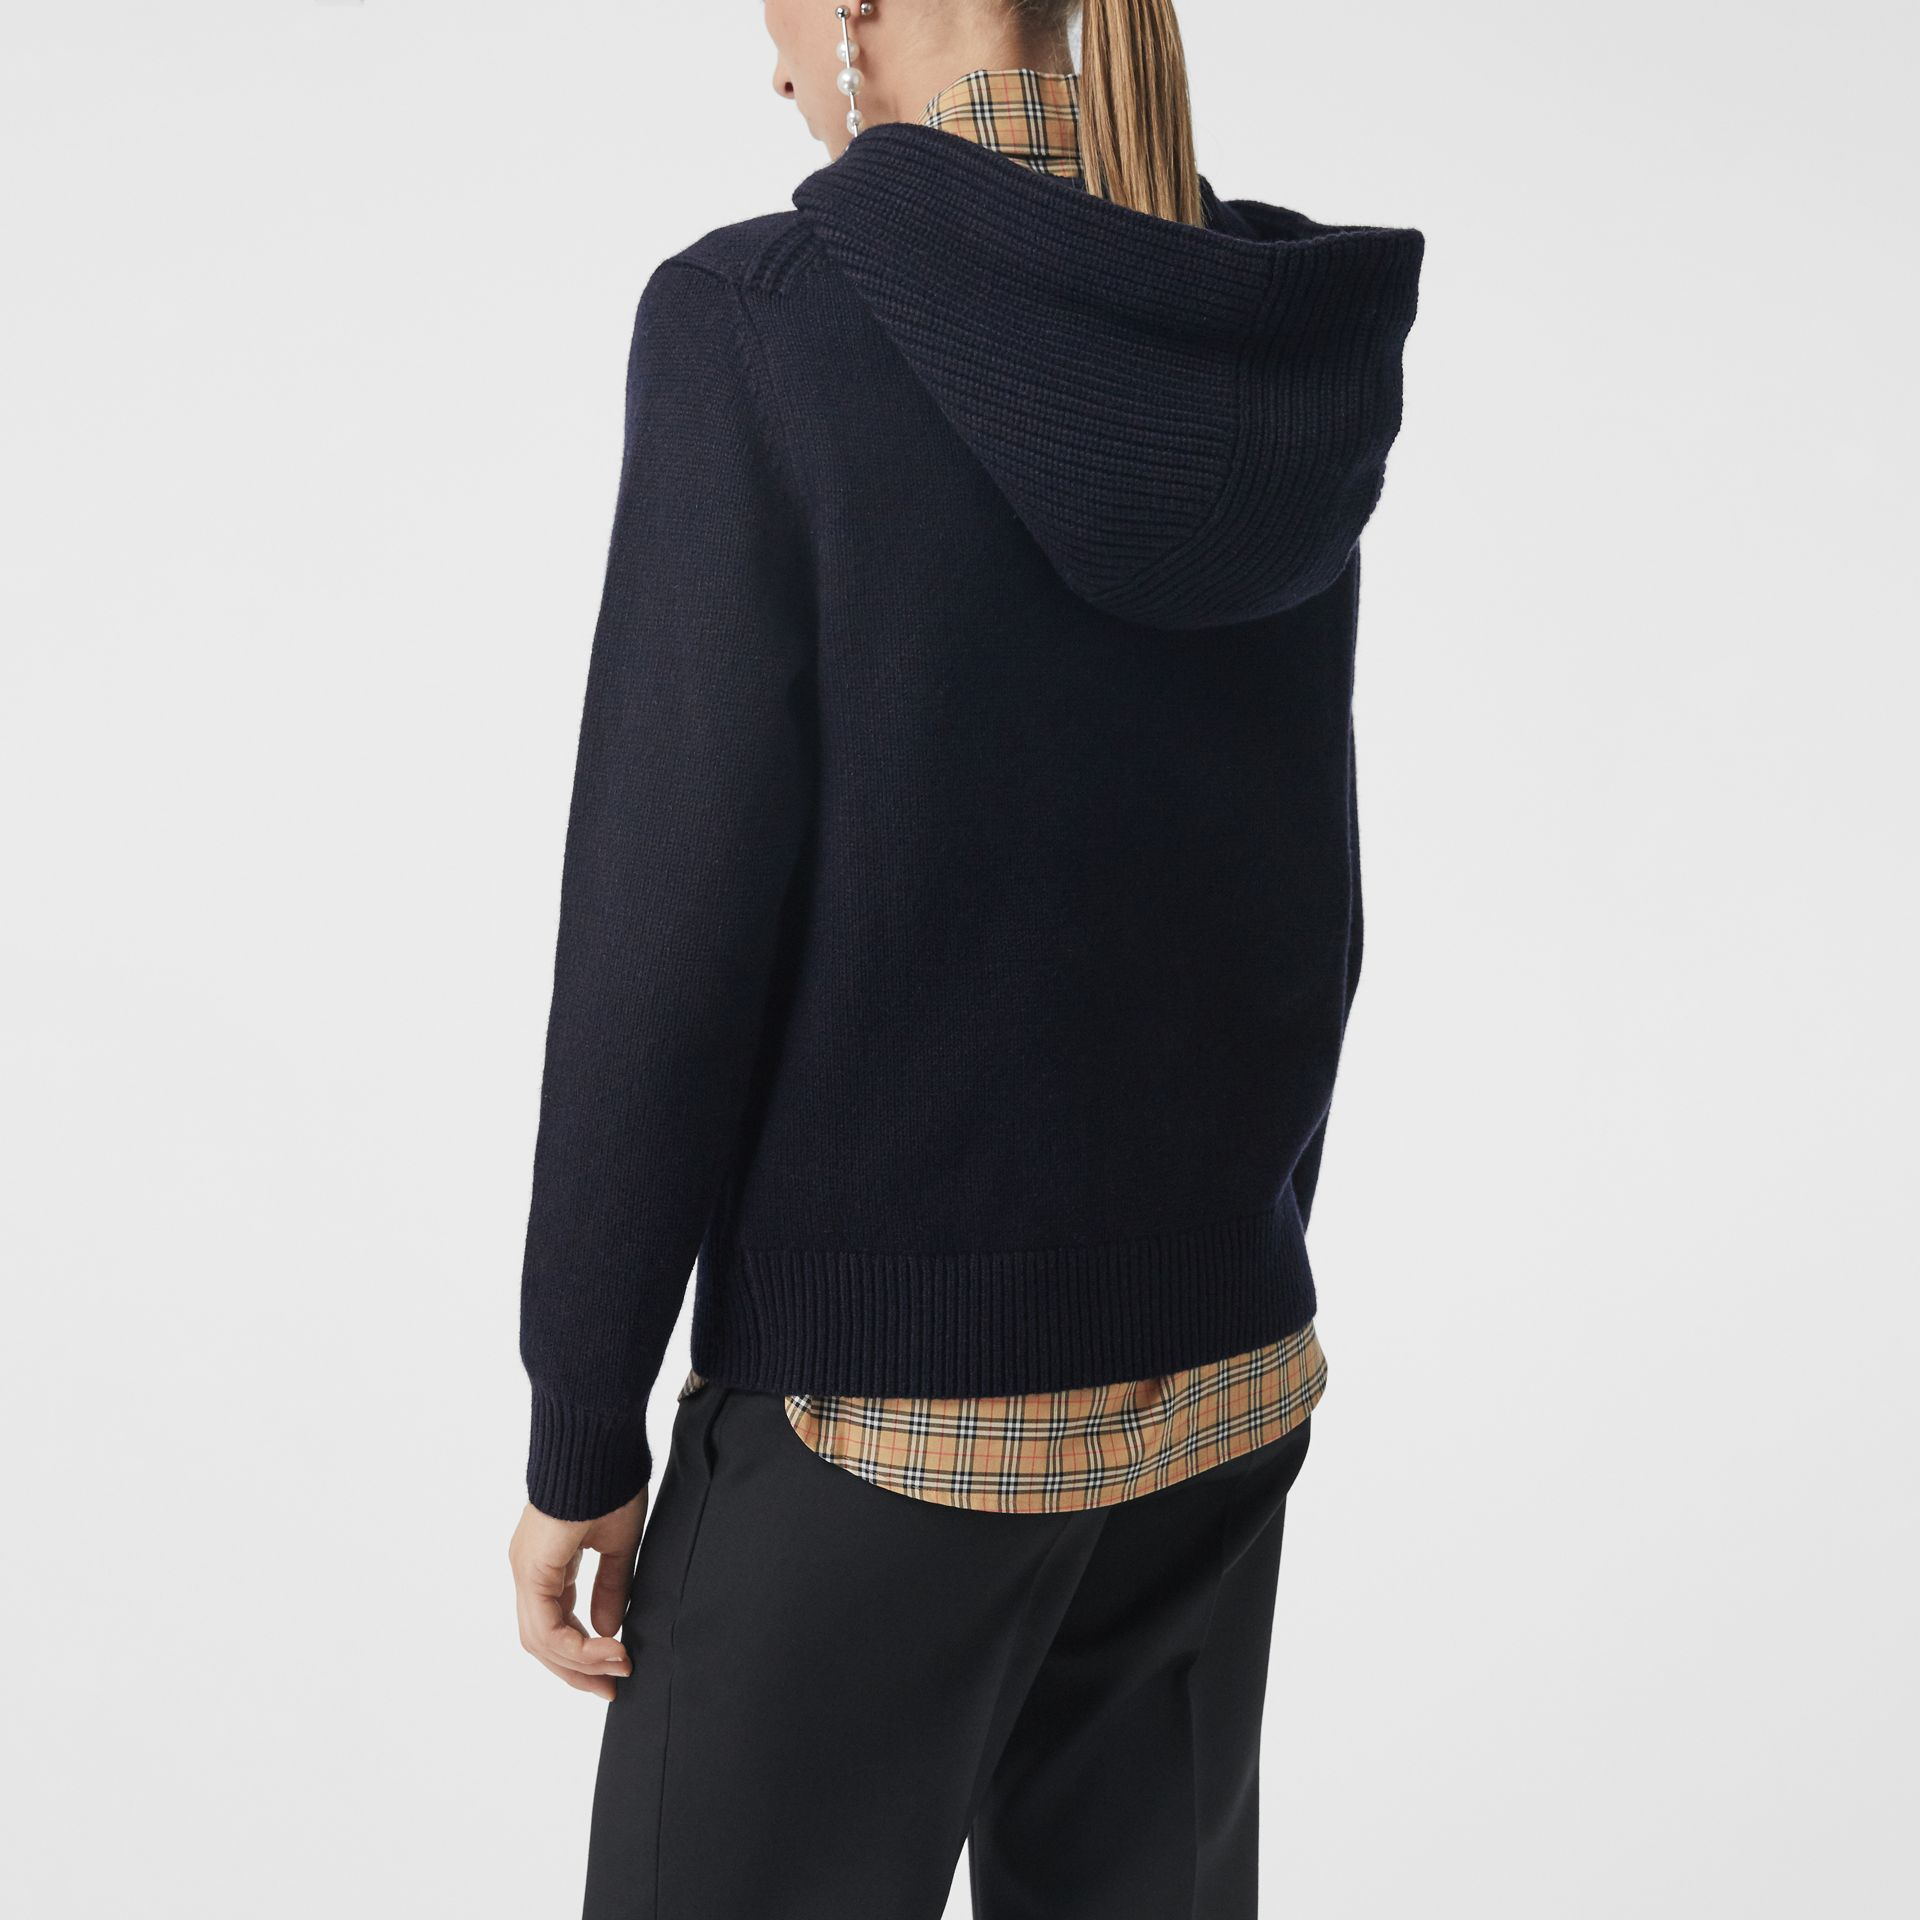 Embroidered Crest Cashmere Hooded Top in Navy - Women | Burberry Singapore - gallery image 2